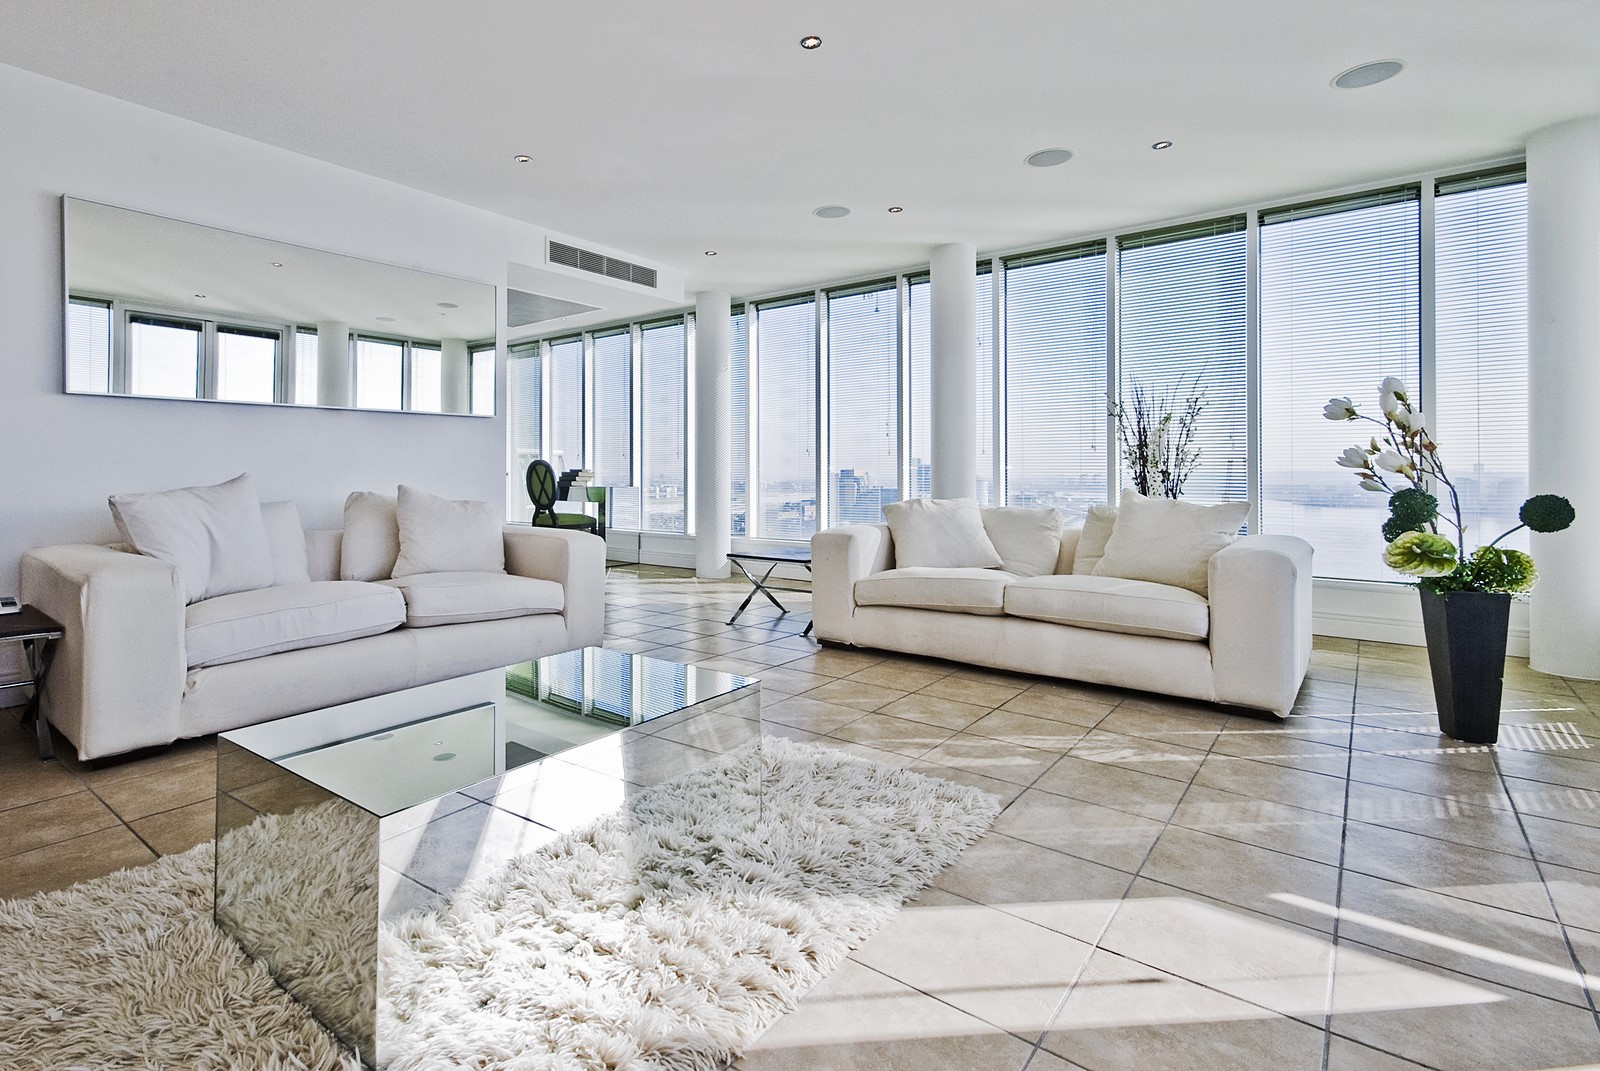 Check if You Need Glass Repair Services to Stop Air Leaks in Your Home